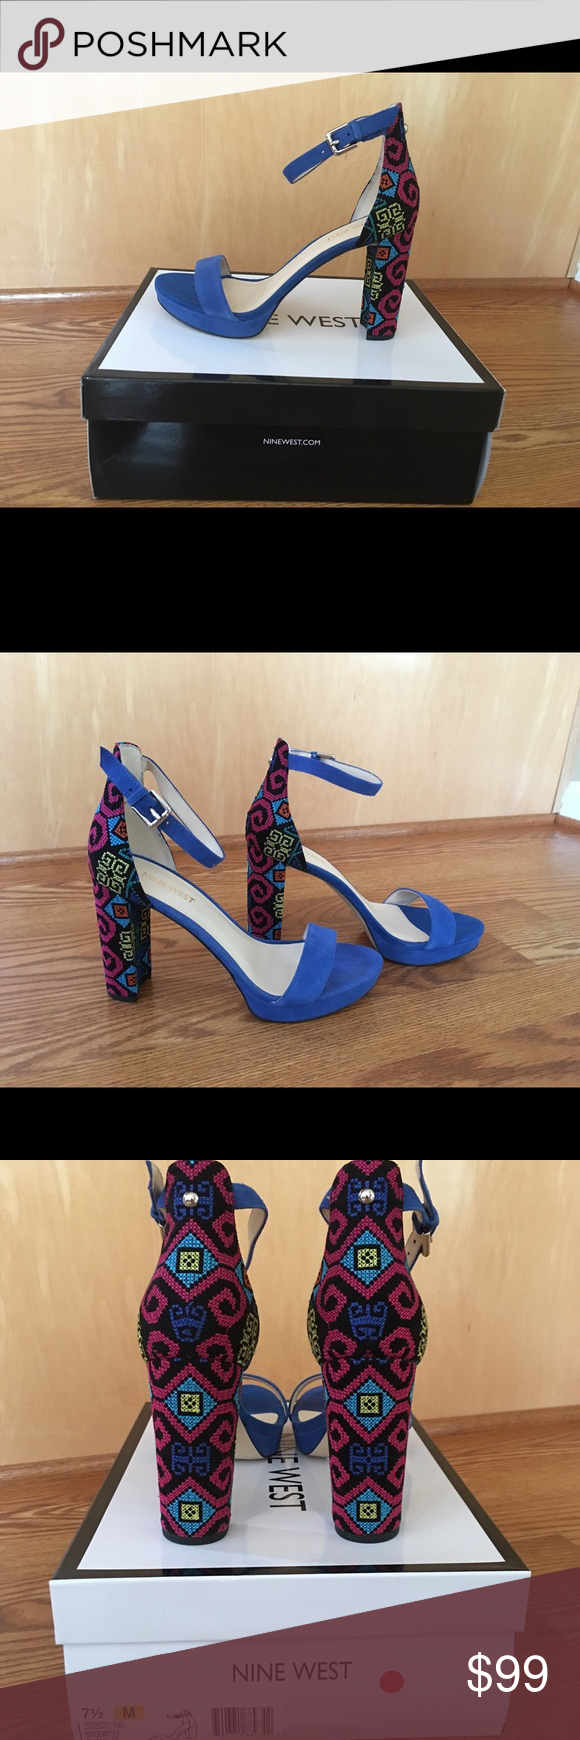 a6840a5c37c NEW. Nine West Dempsey Dress Sandal Multi Fabric With a delicate ankle  strap